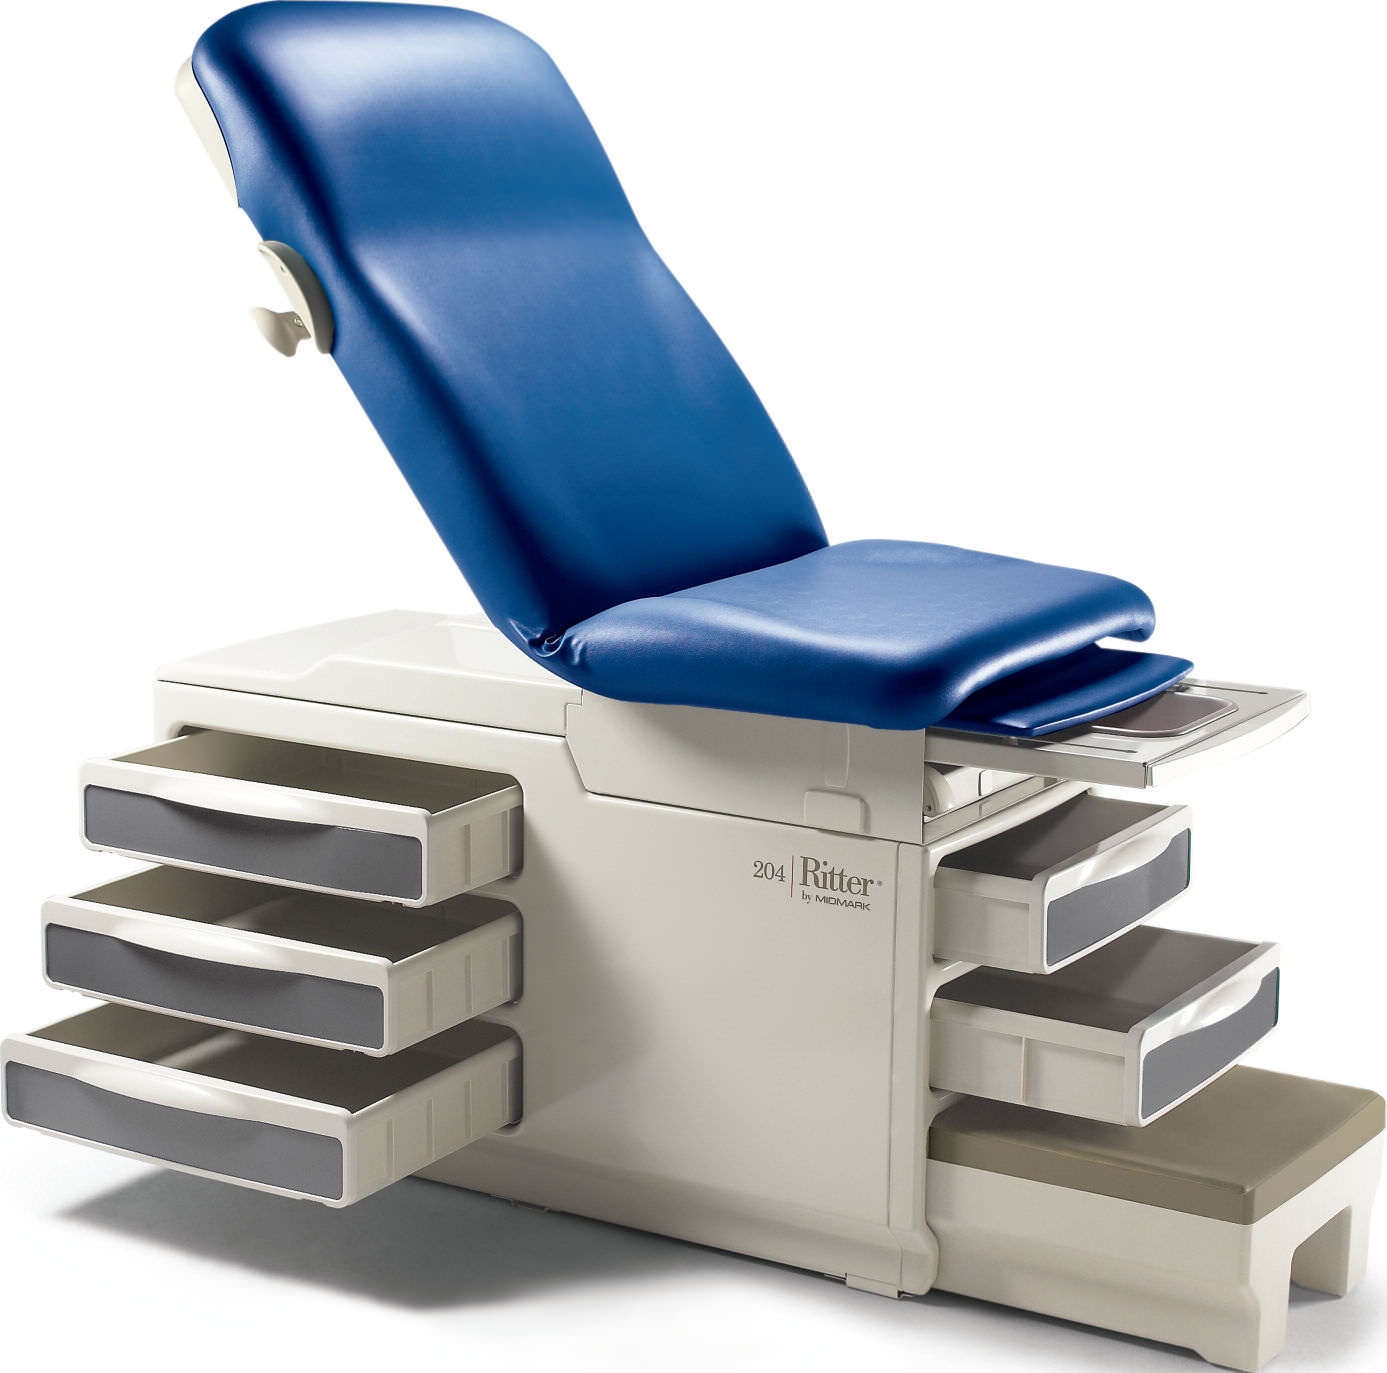 Exam table Exam table1  sc 1 st  Azalea Surgical Products & Exam Table Power Chair Repair Service - Houston TX - Surgiquip ...